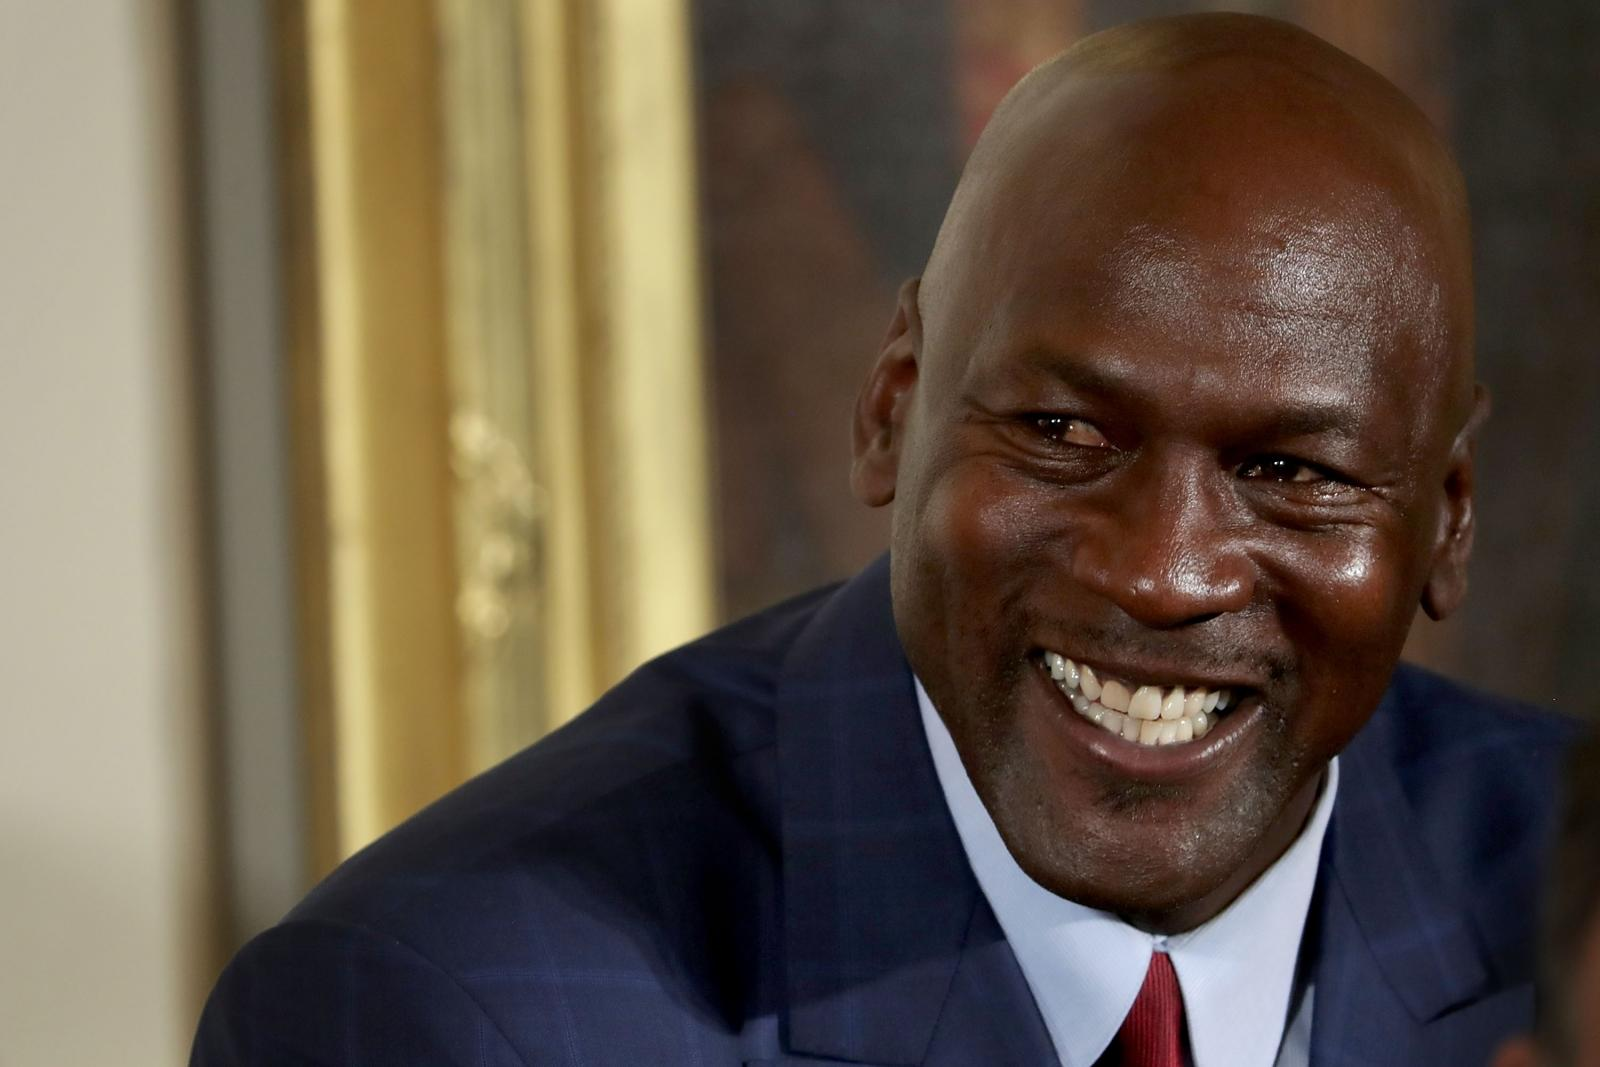 Michael Jordan wins trademark case allowing him rights to his Chinese name